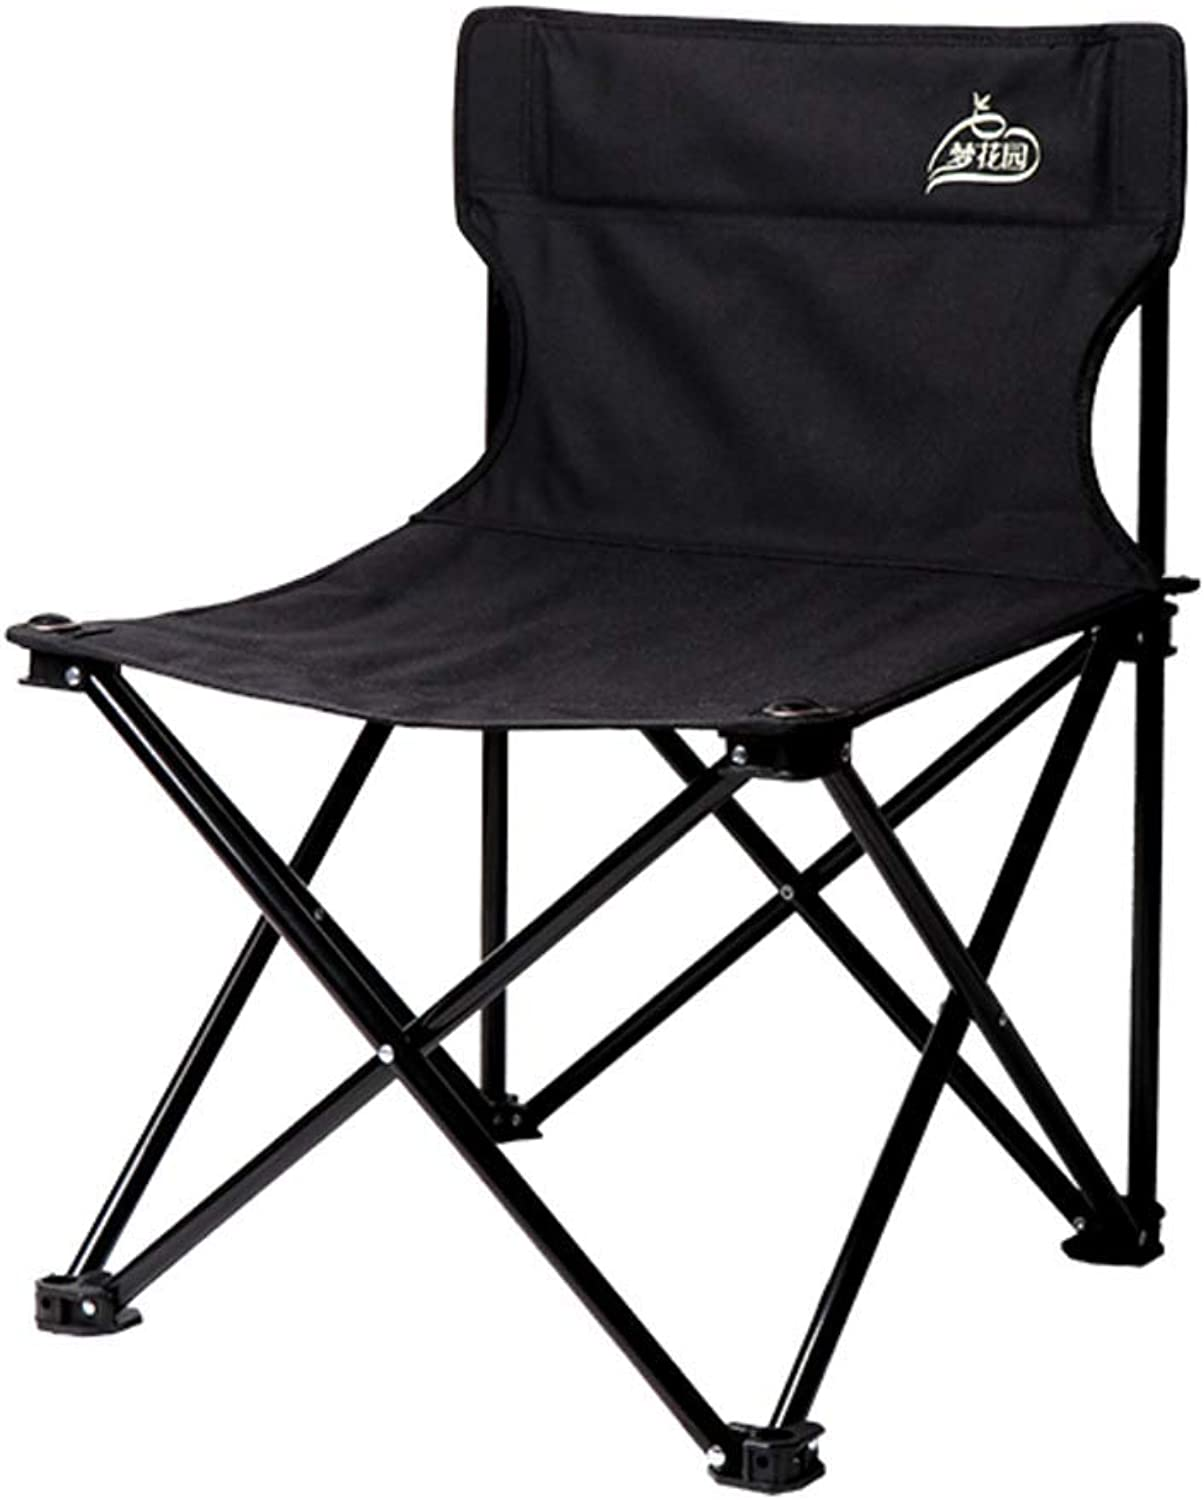 Folding Chair Ultralight Portable in Carrying Bag, Supports up to 200Kg 45  45  75Cm Easy for Walking, Fishing, Beach, BBQ, Picnic, Outdoor.